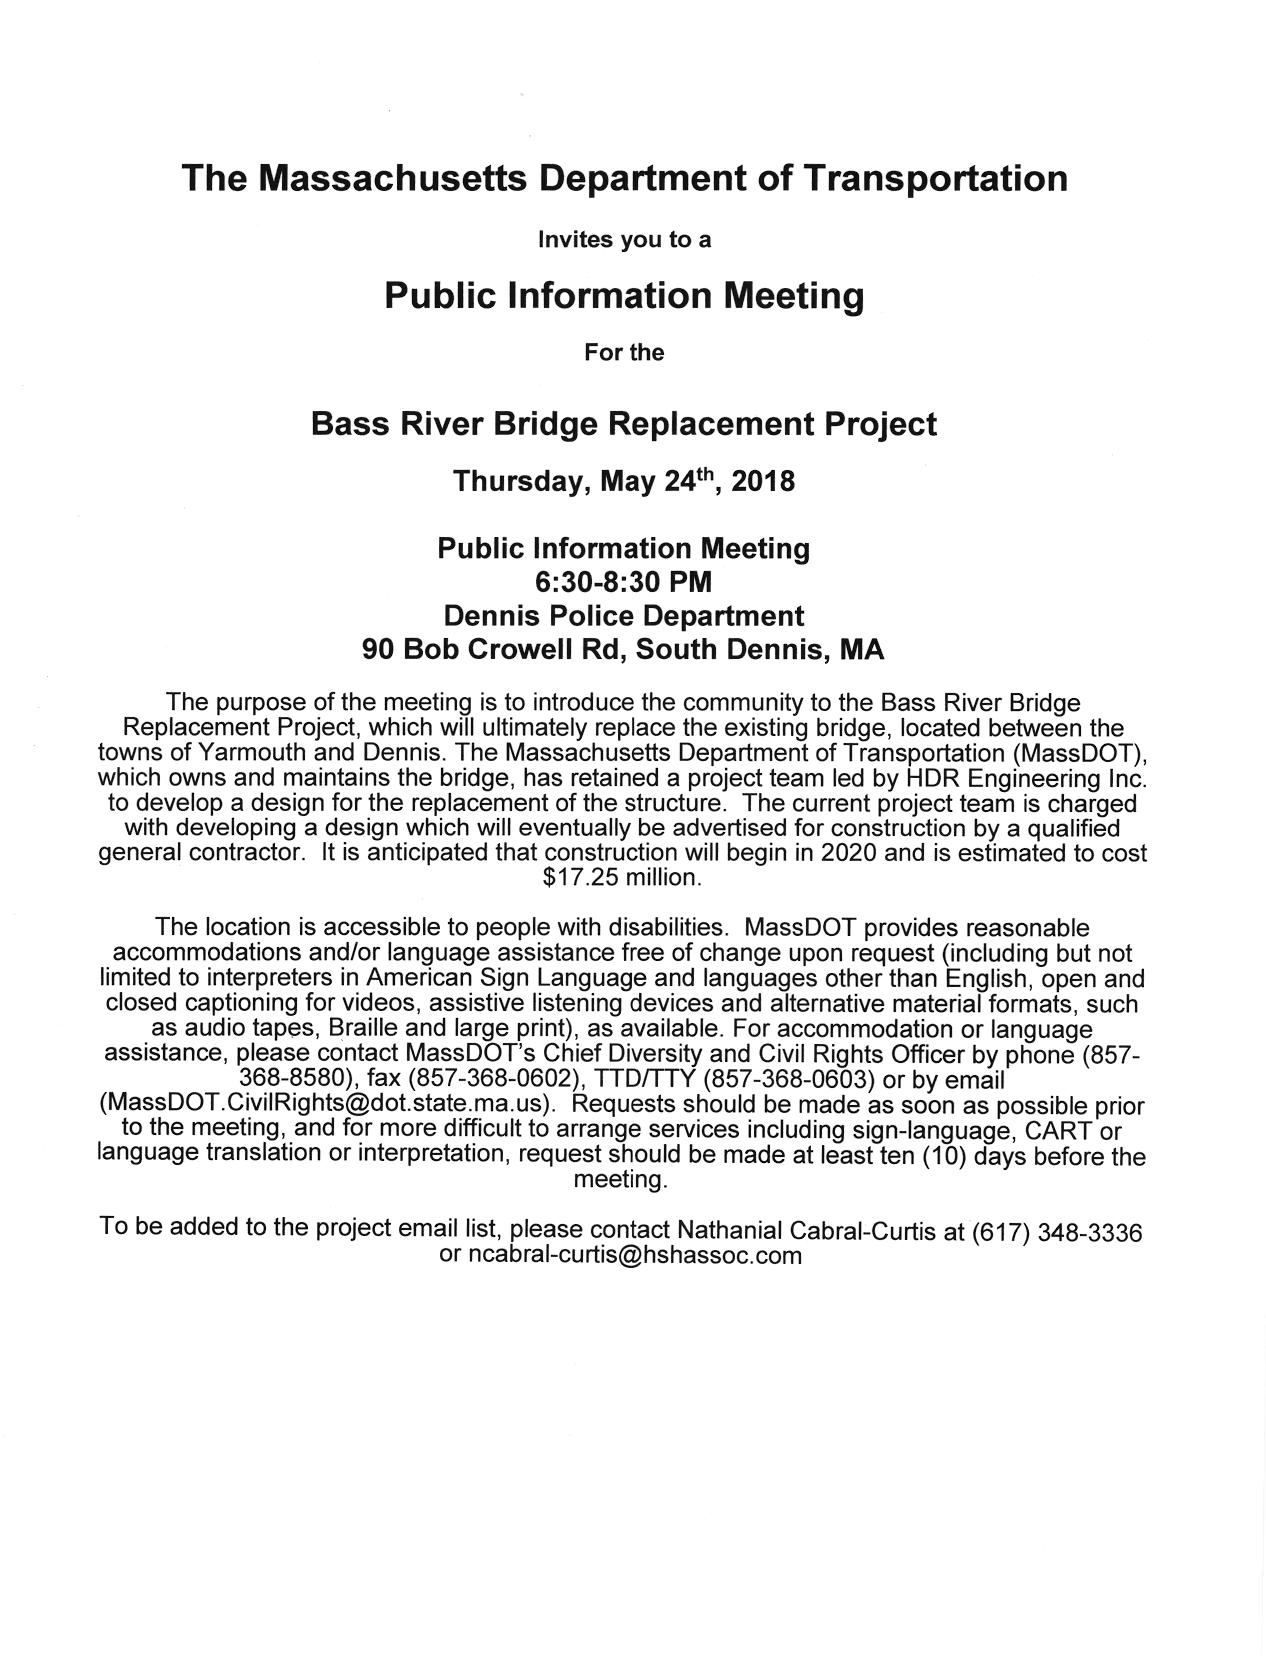 Bass River Bridge project